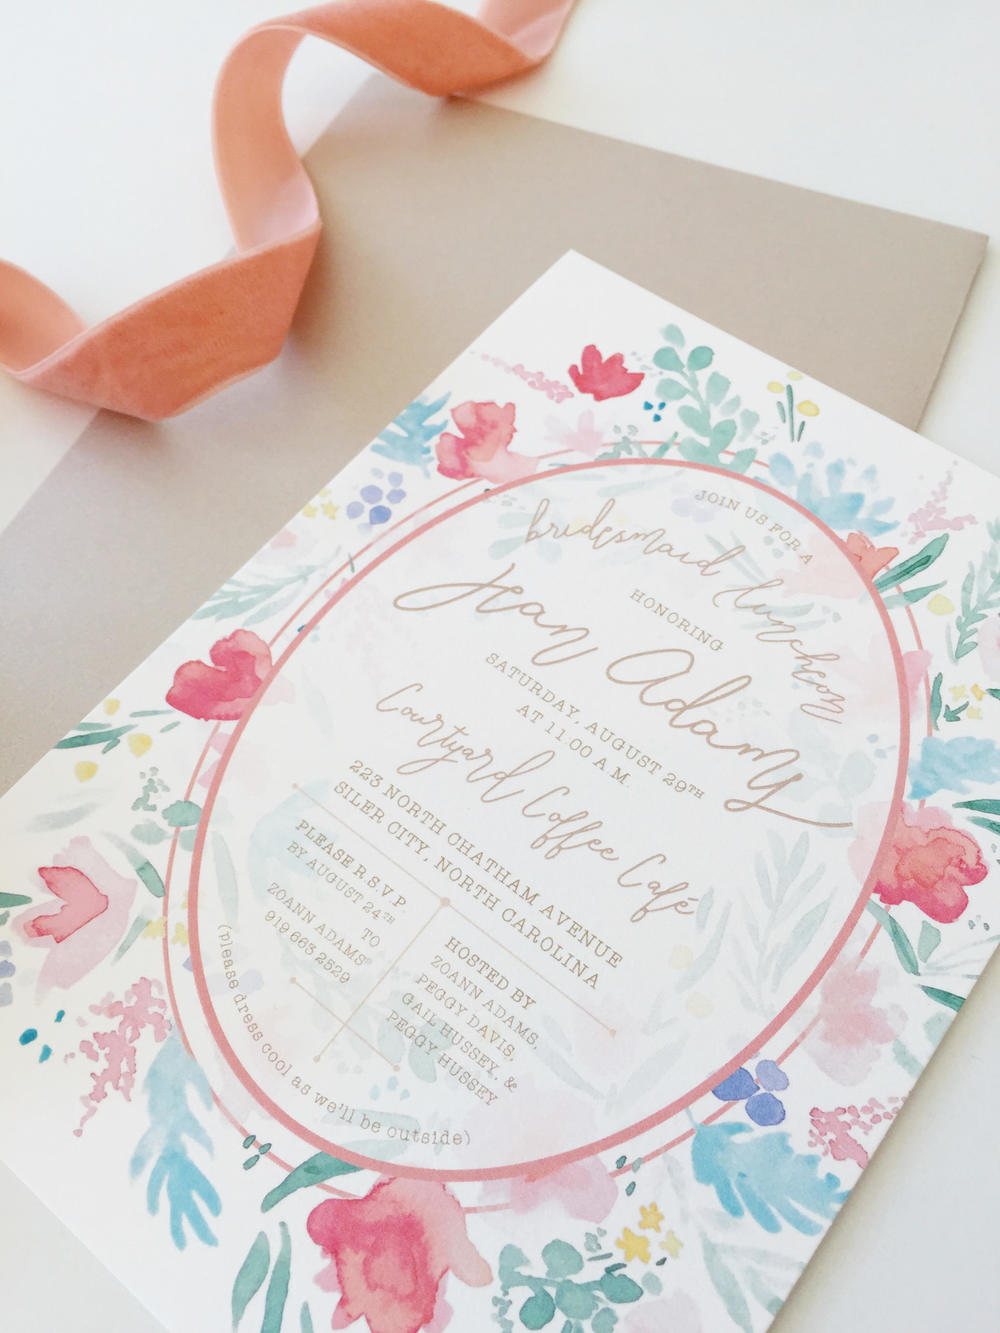 custom watercolor floral bridal shower invitation by Sable and Gray